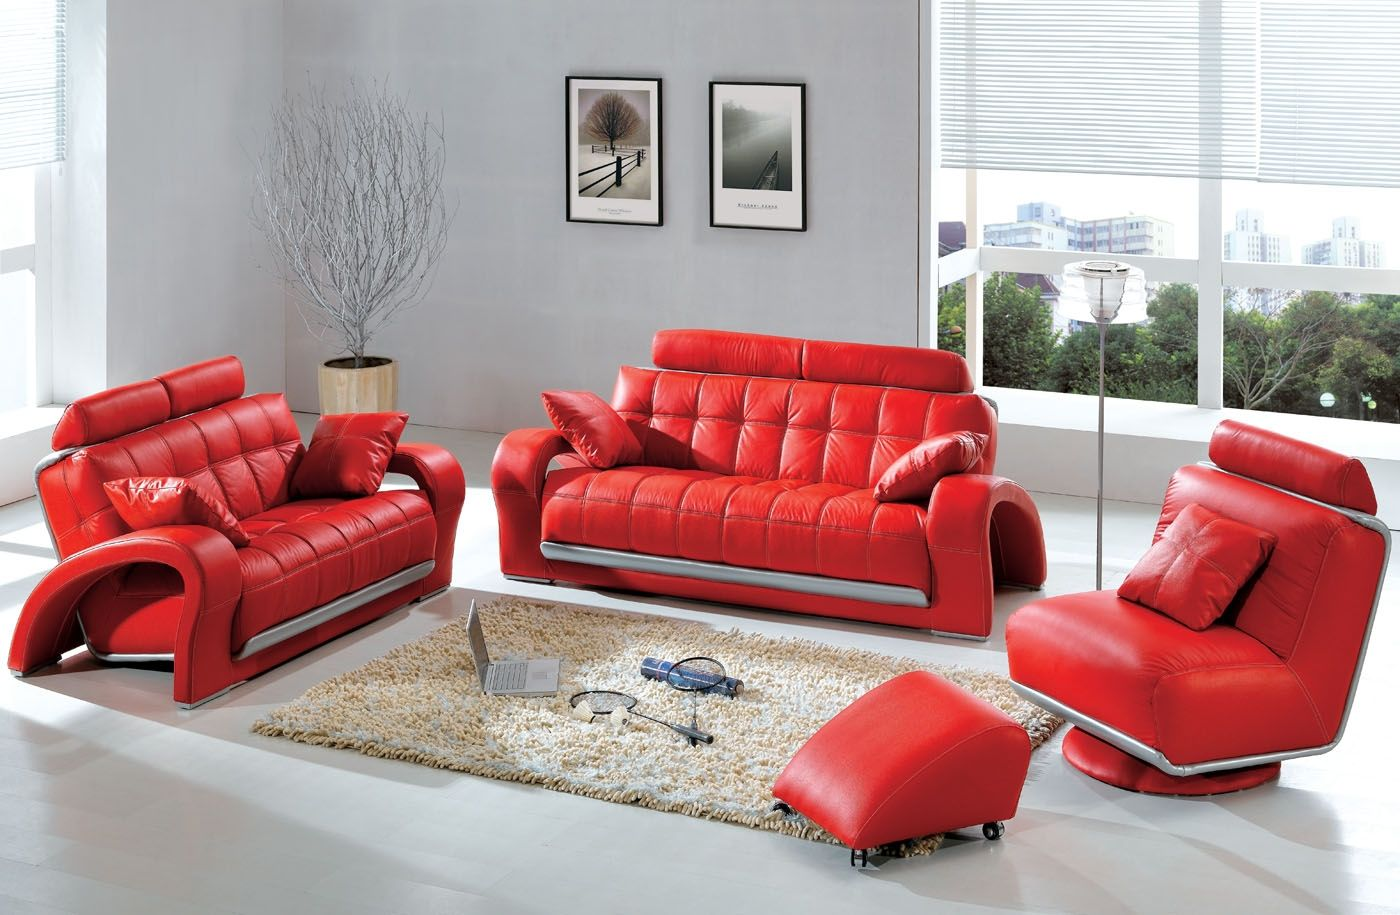 Modern Contemporary Leather Sofa Sectional Sets Funky Furniture And Stuff I Love Red